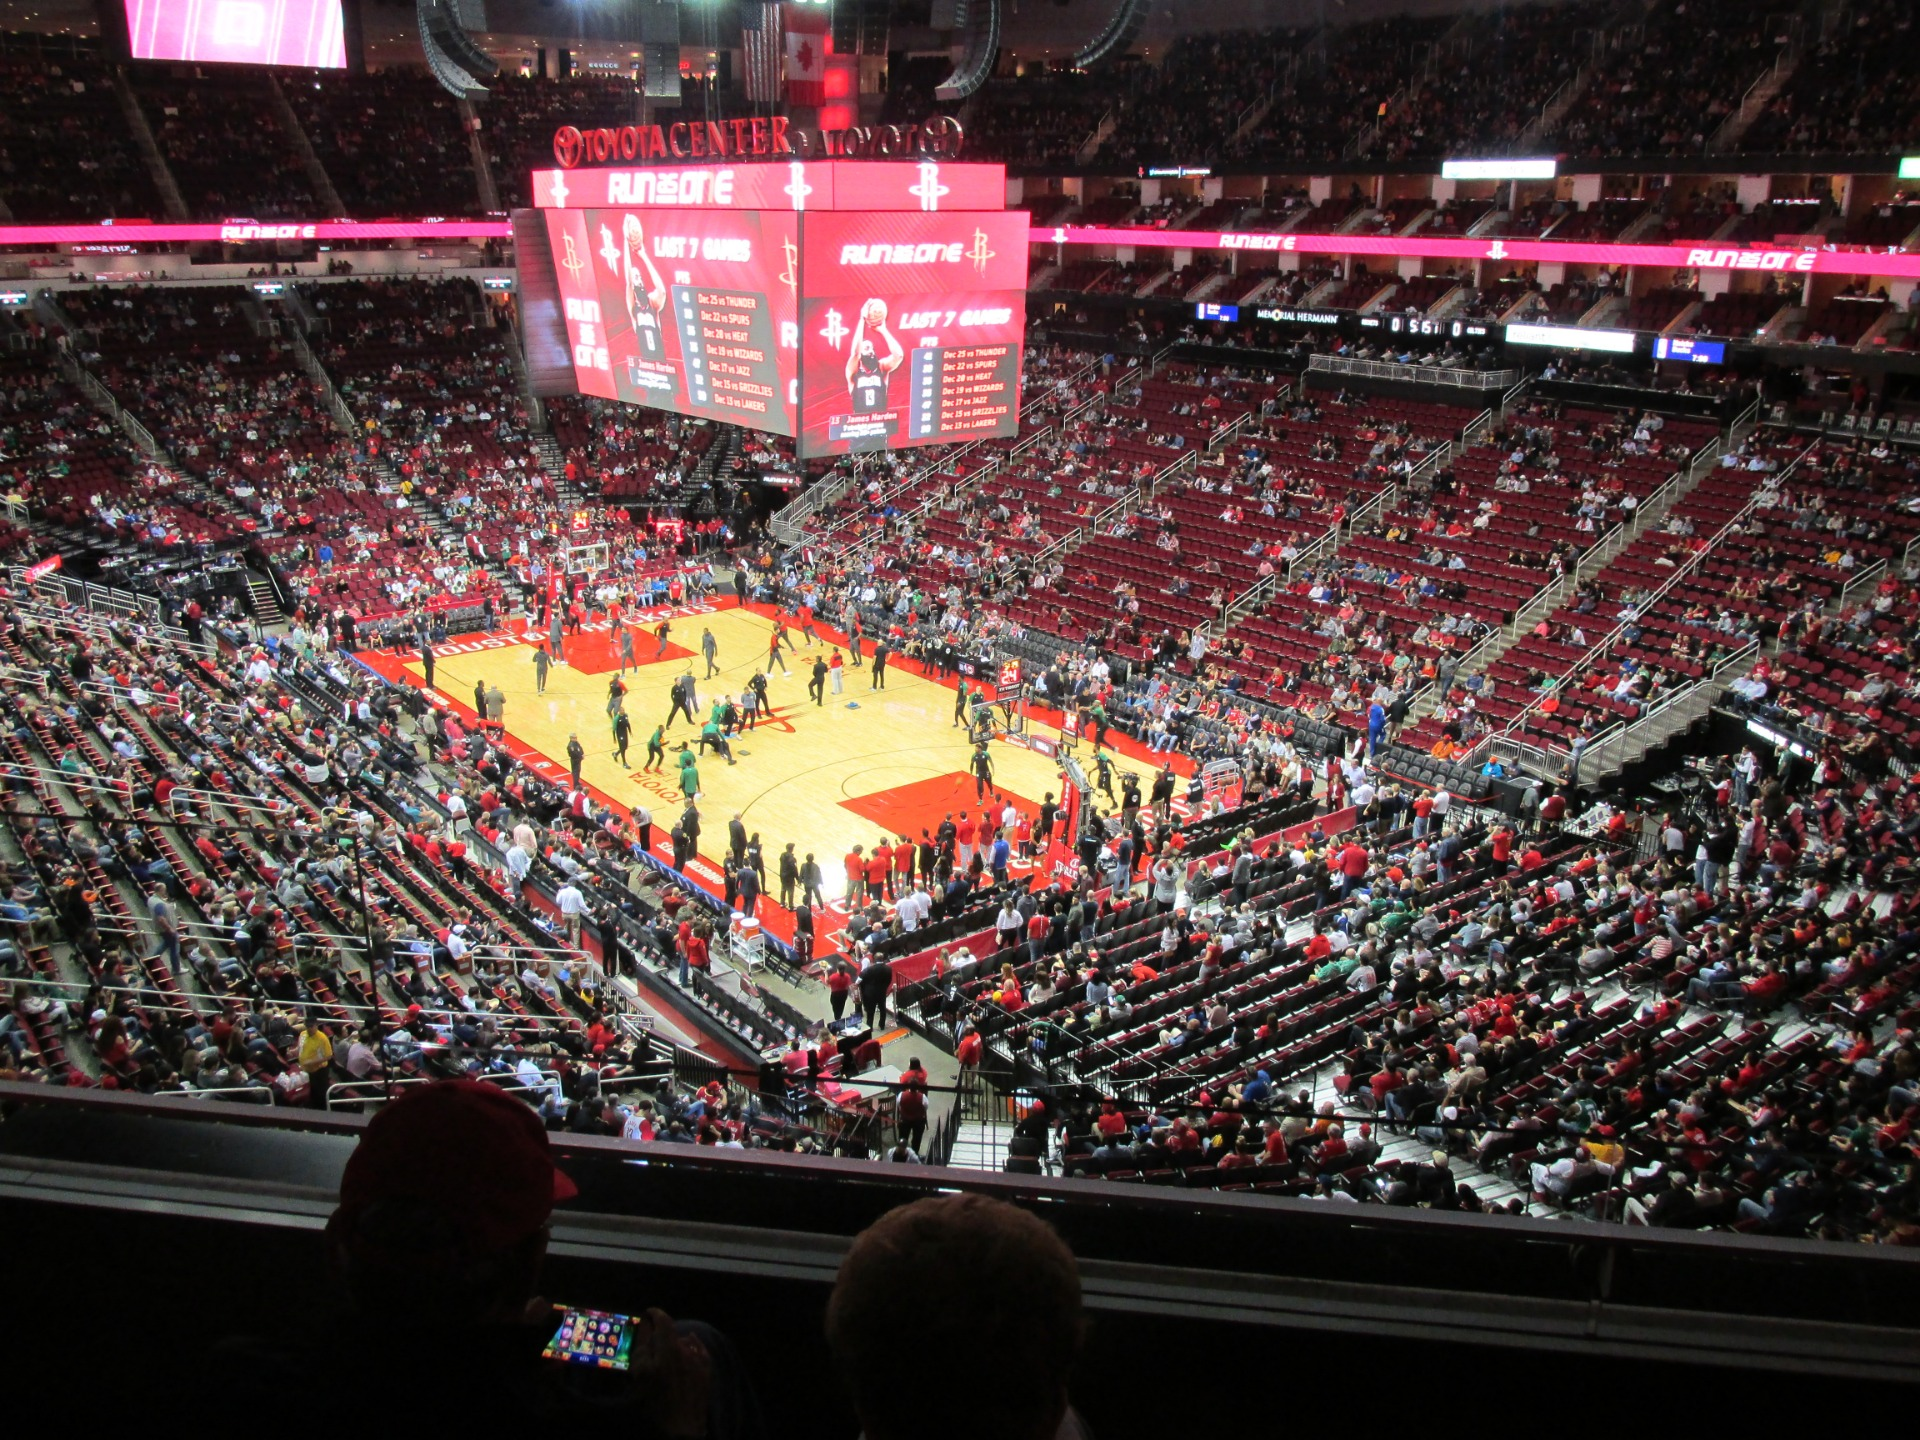 Toyota Center Section 421 Row 3 Seat 11